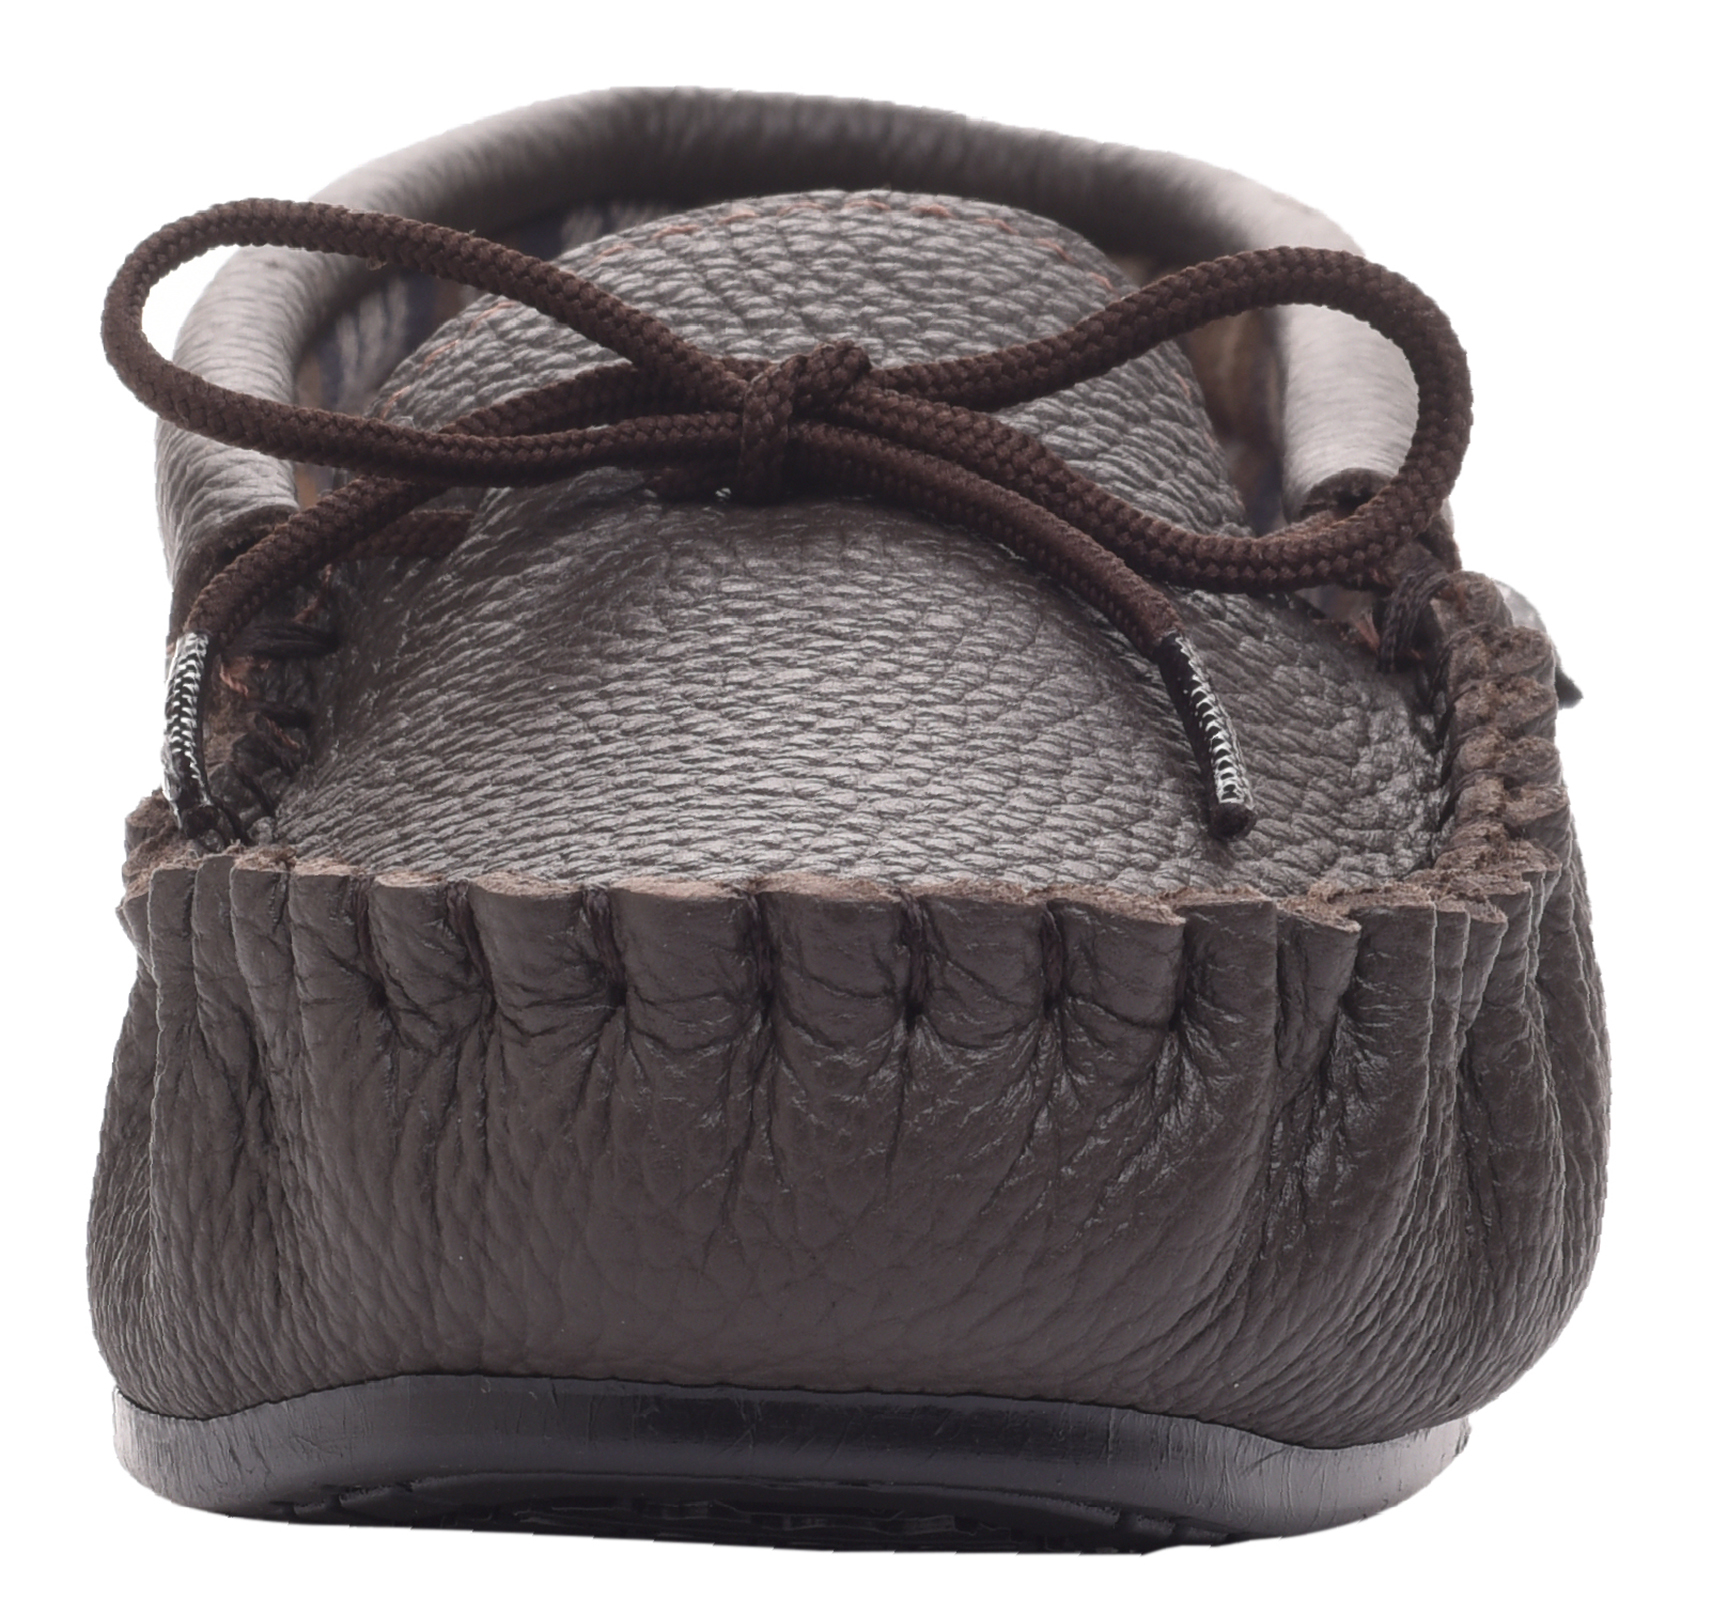 Leather-Moccasin-Slippers-UK-Made-for-Men-and-Ladies-Cotton-Lining-by-Lambland thumbnail 13